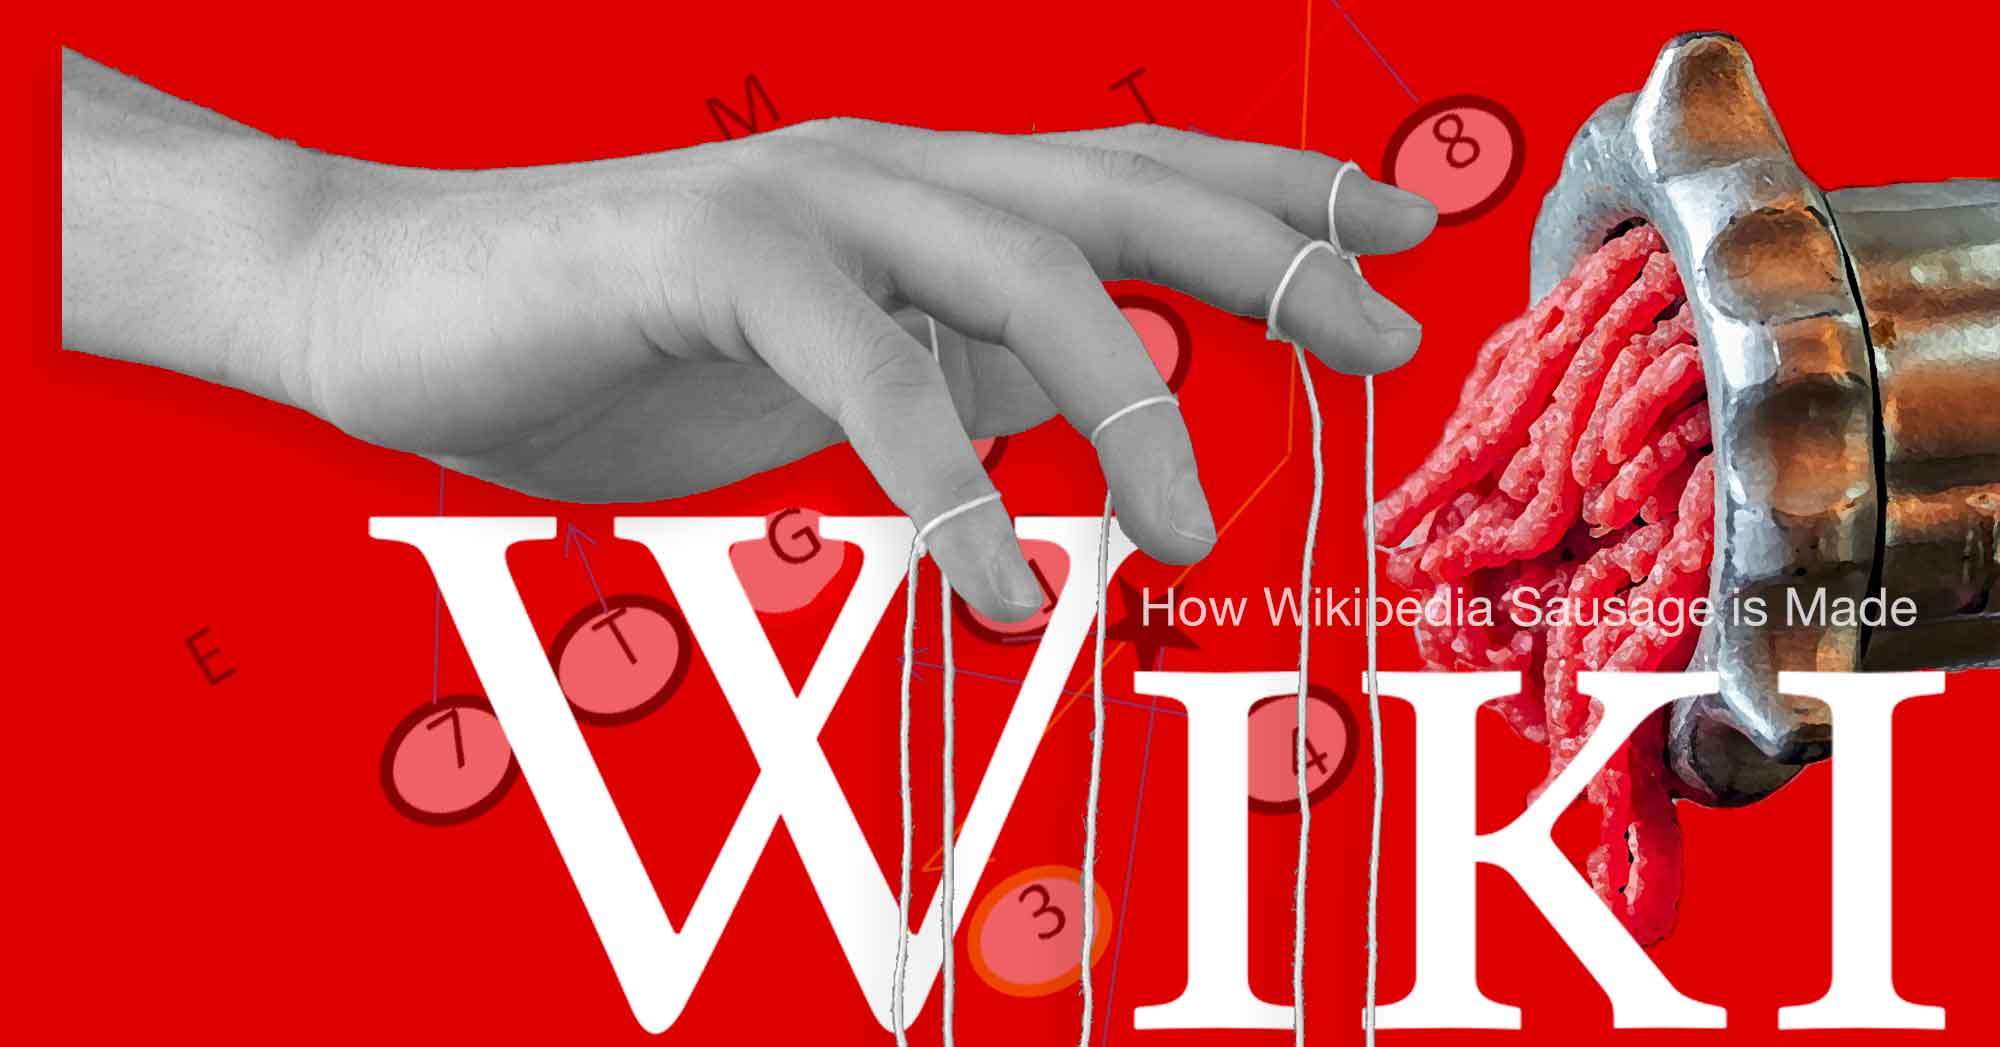 What Wikipedia editing is actually like